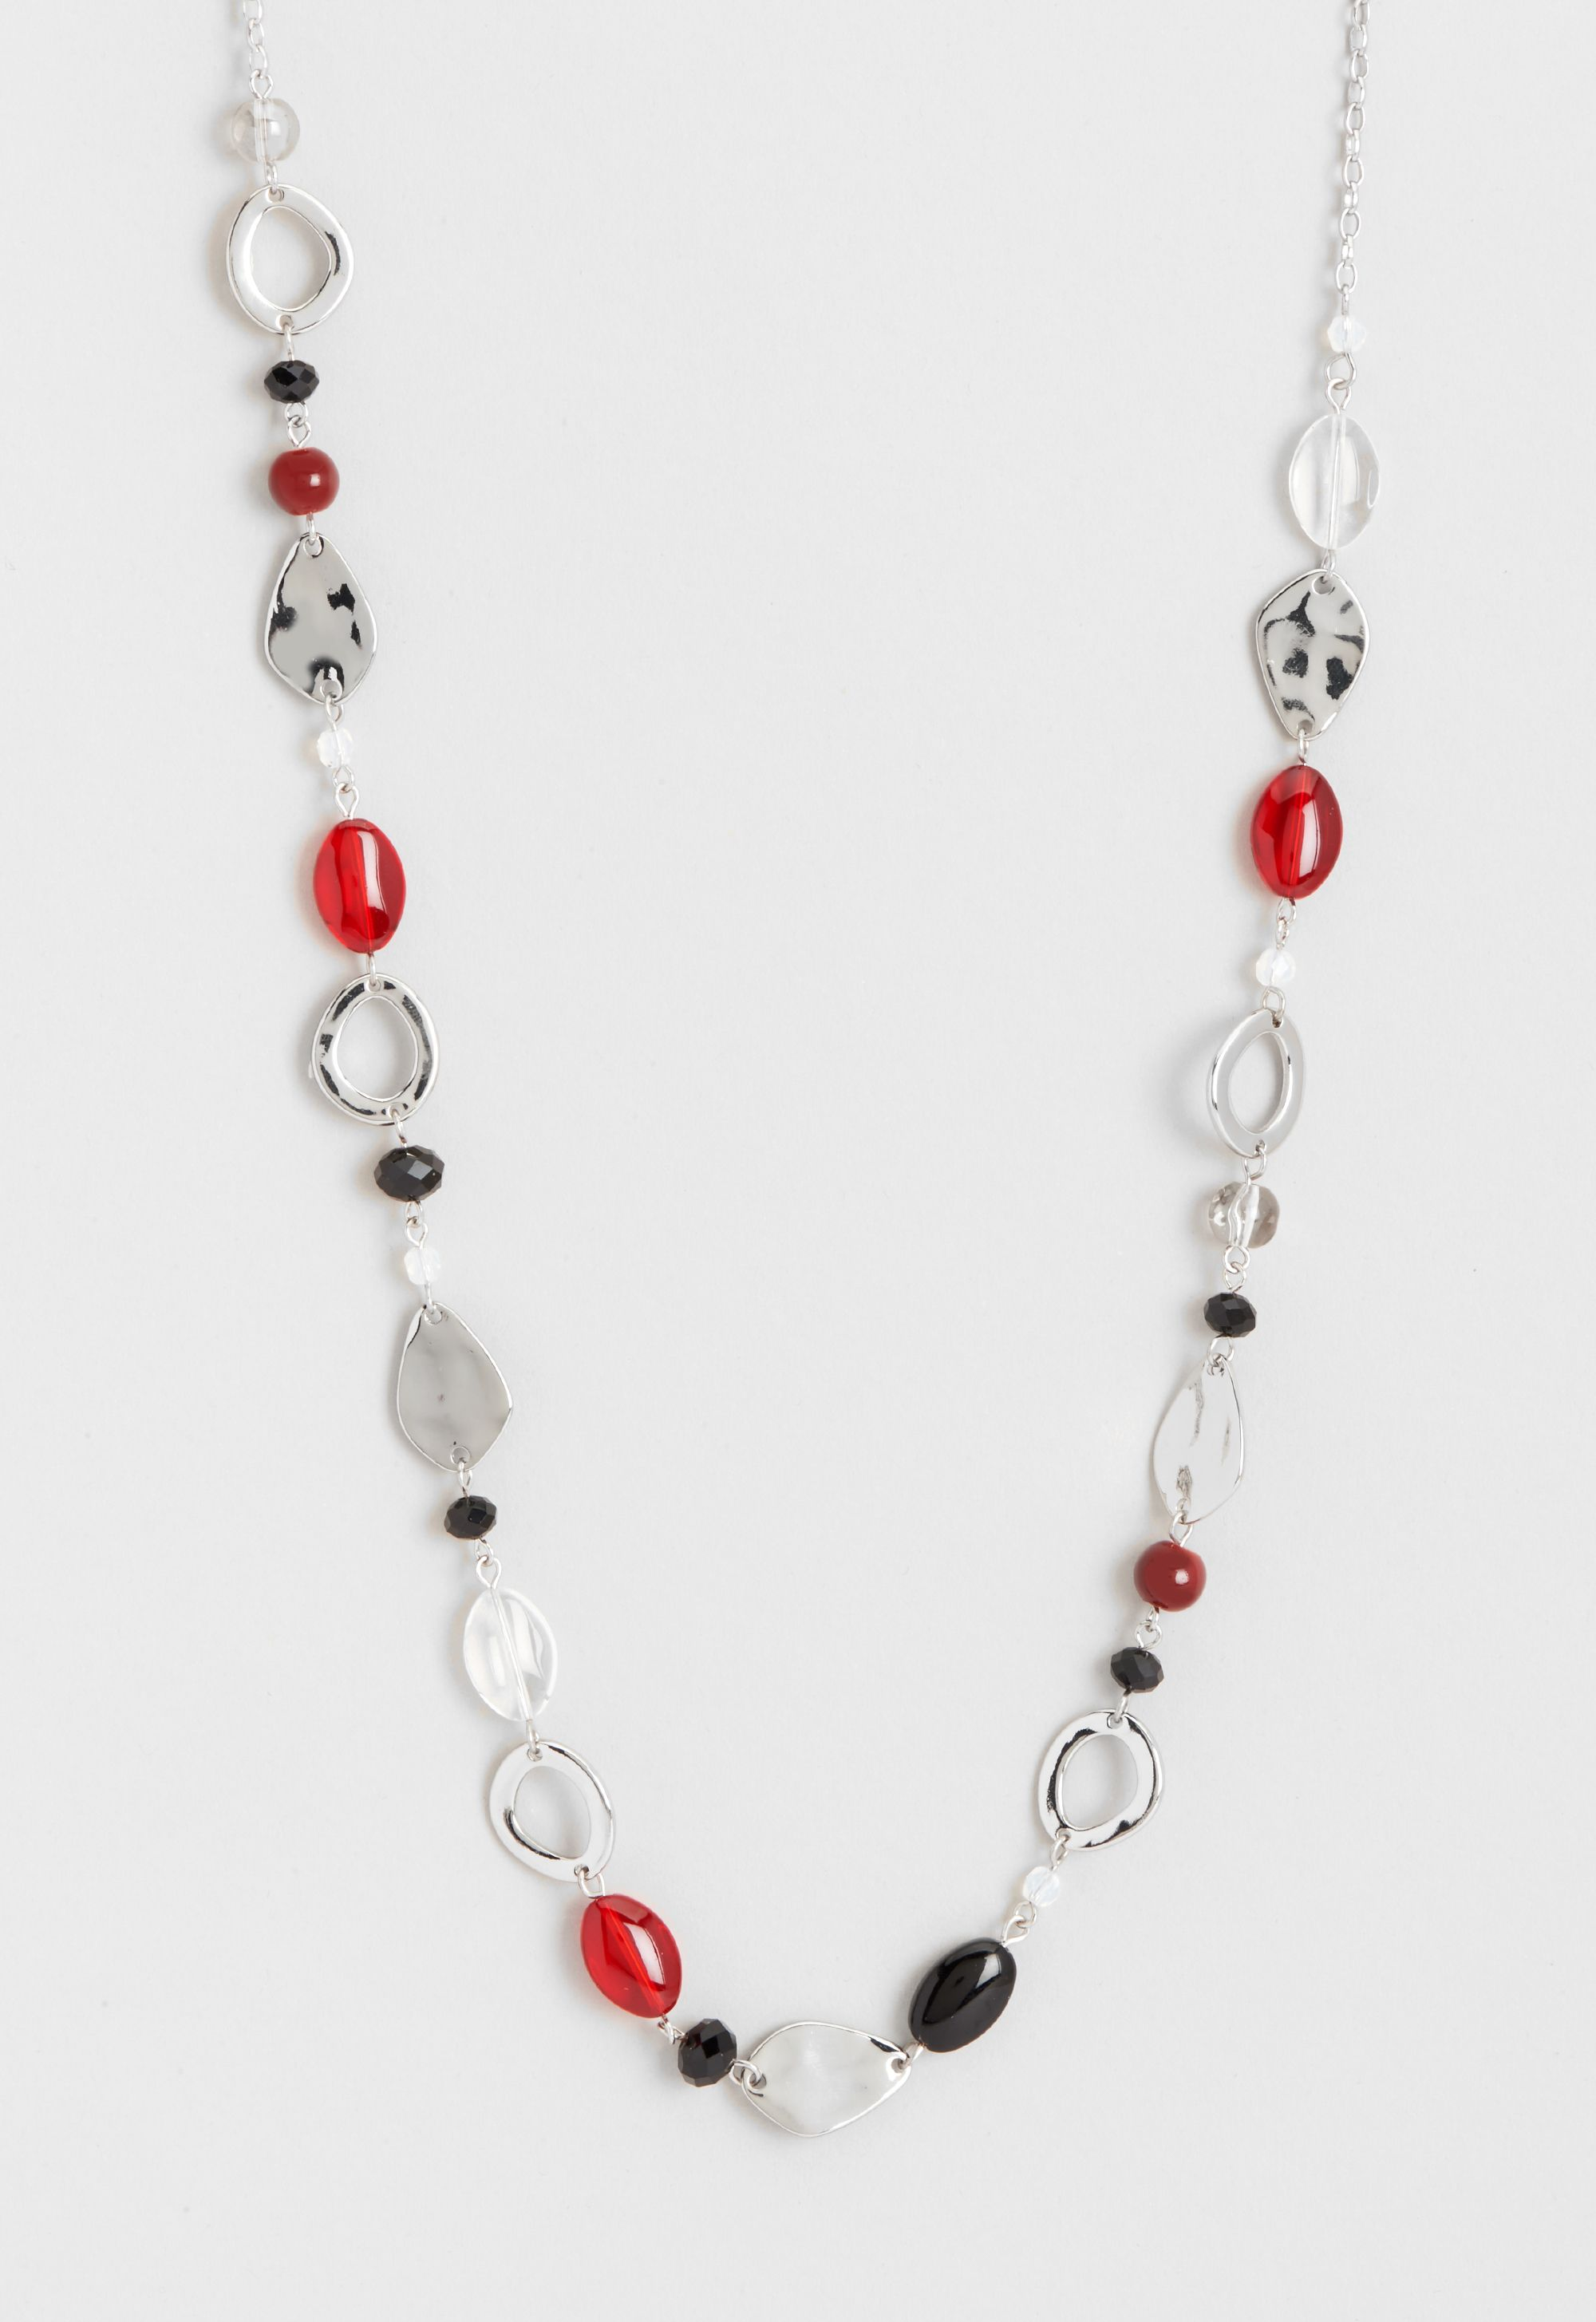 """<span id=""""ctl00_mainContent_DataGrid1_ctl03_lblProductName"""">Long Single Strand Necklace </span>"""